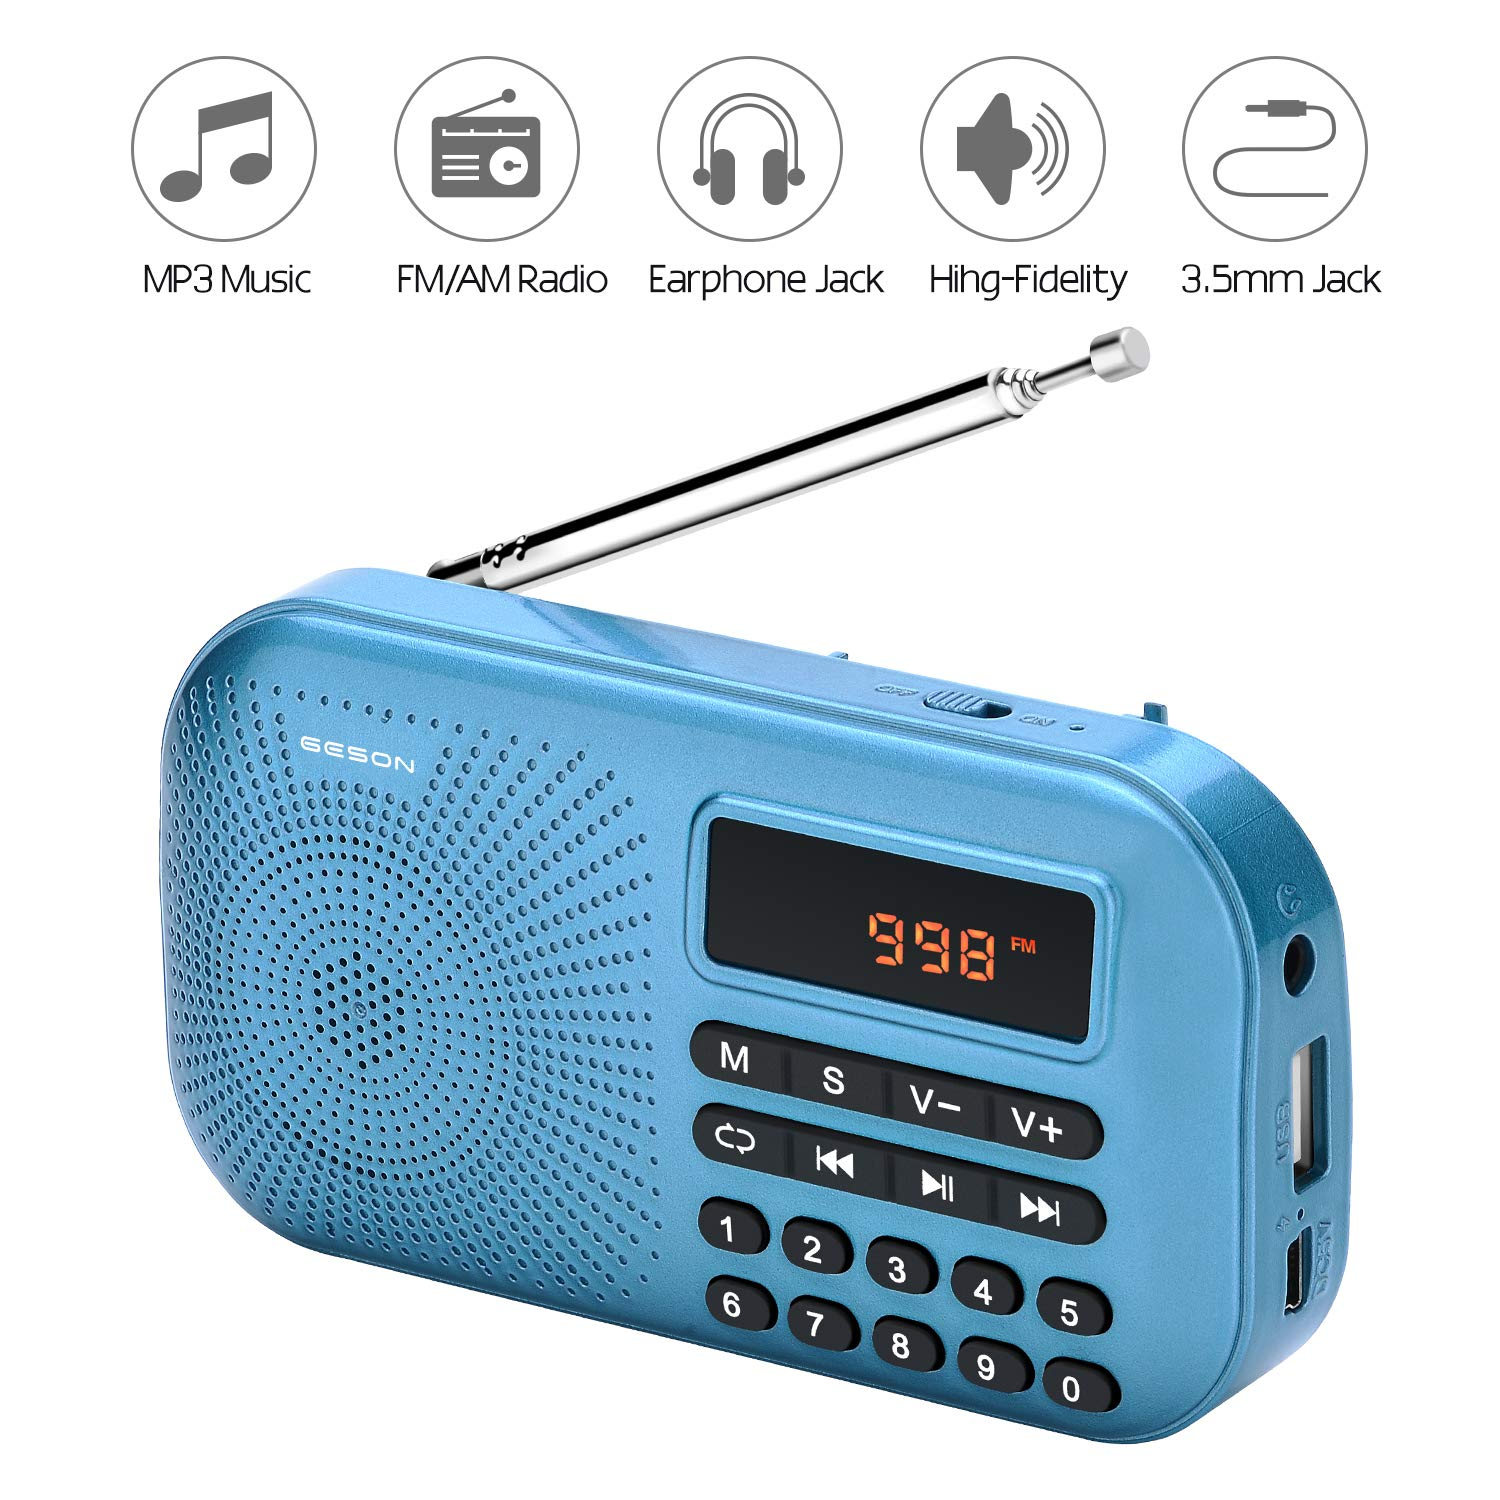 Portable AM FM Radio, Geson Mini Music Radio Player Support Micro SD Card/USB Disk with LED Screen Display (Blue) by Geson (Image #2)